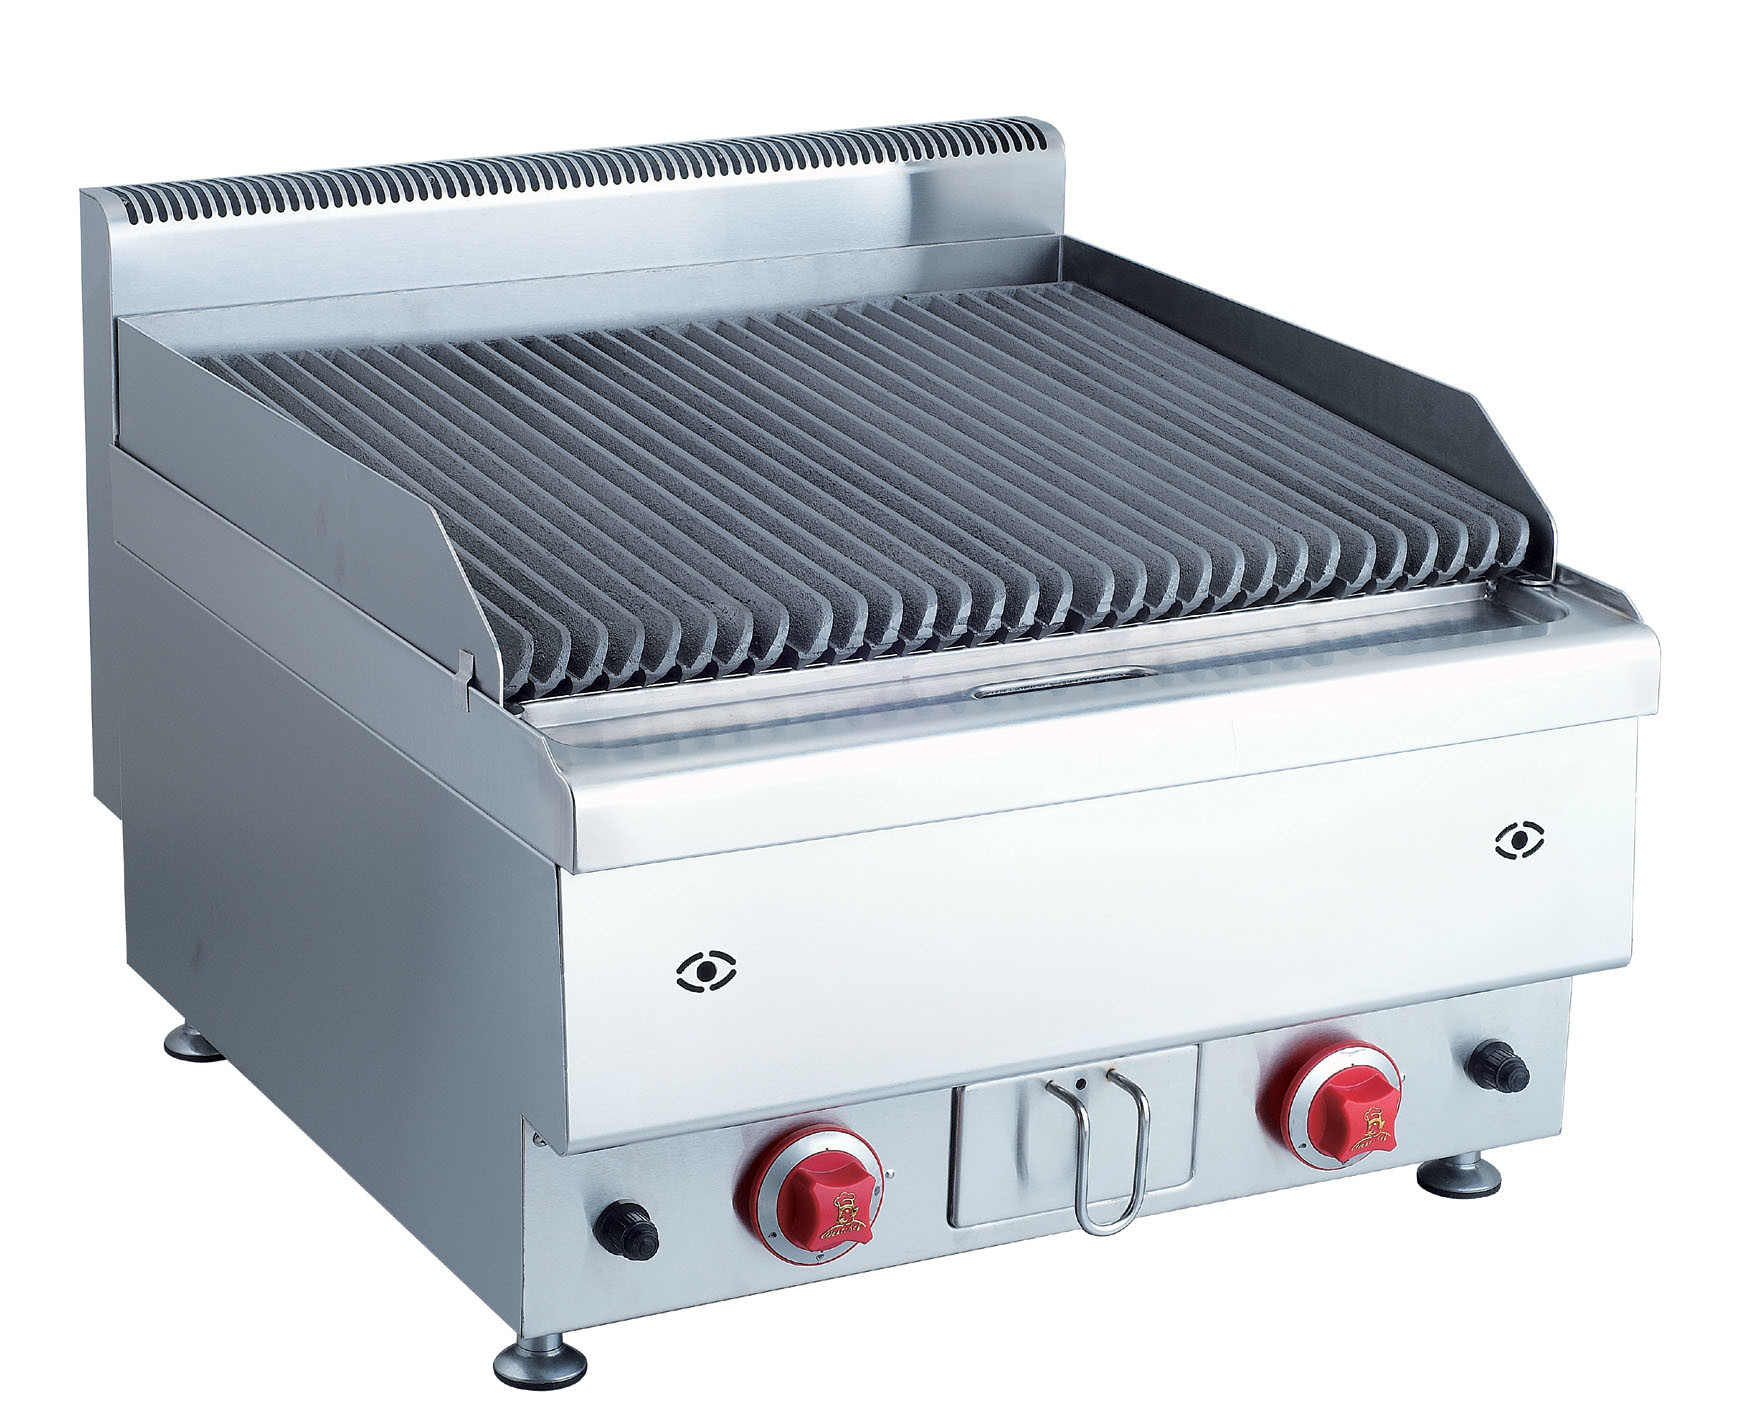 Table Top Gas Lava Rock Grill